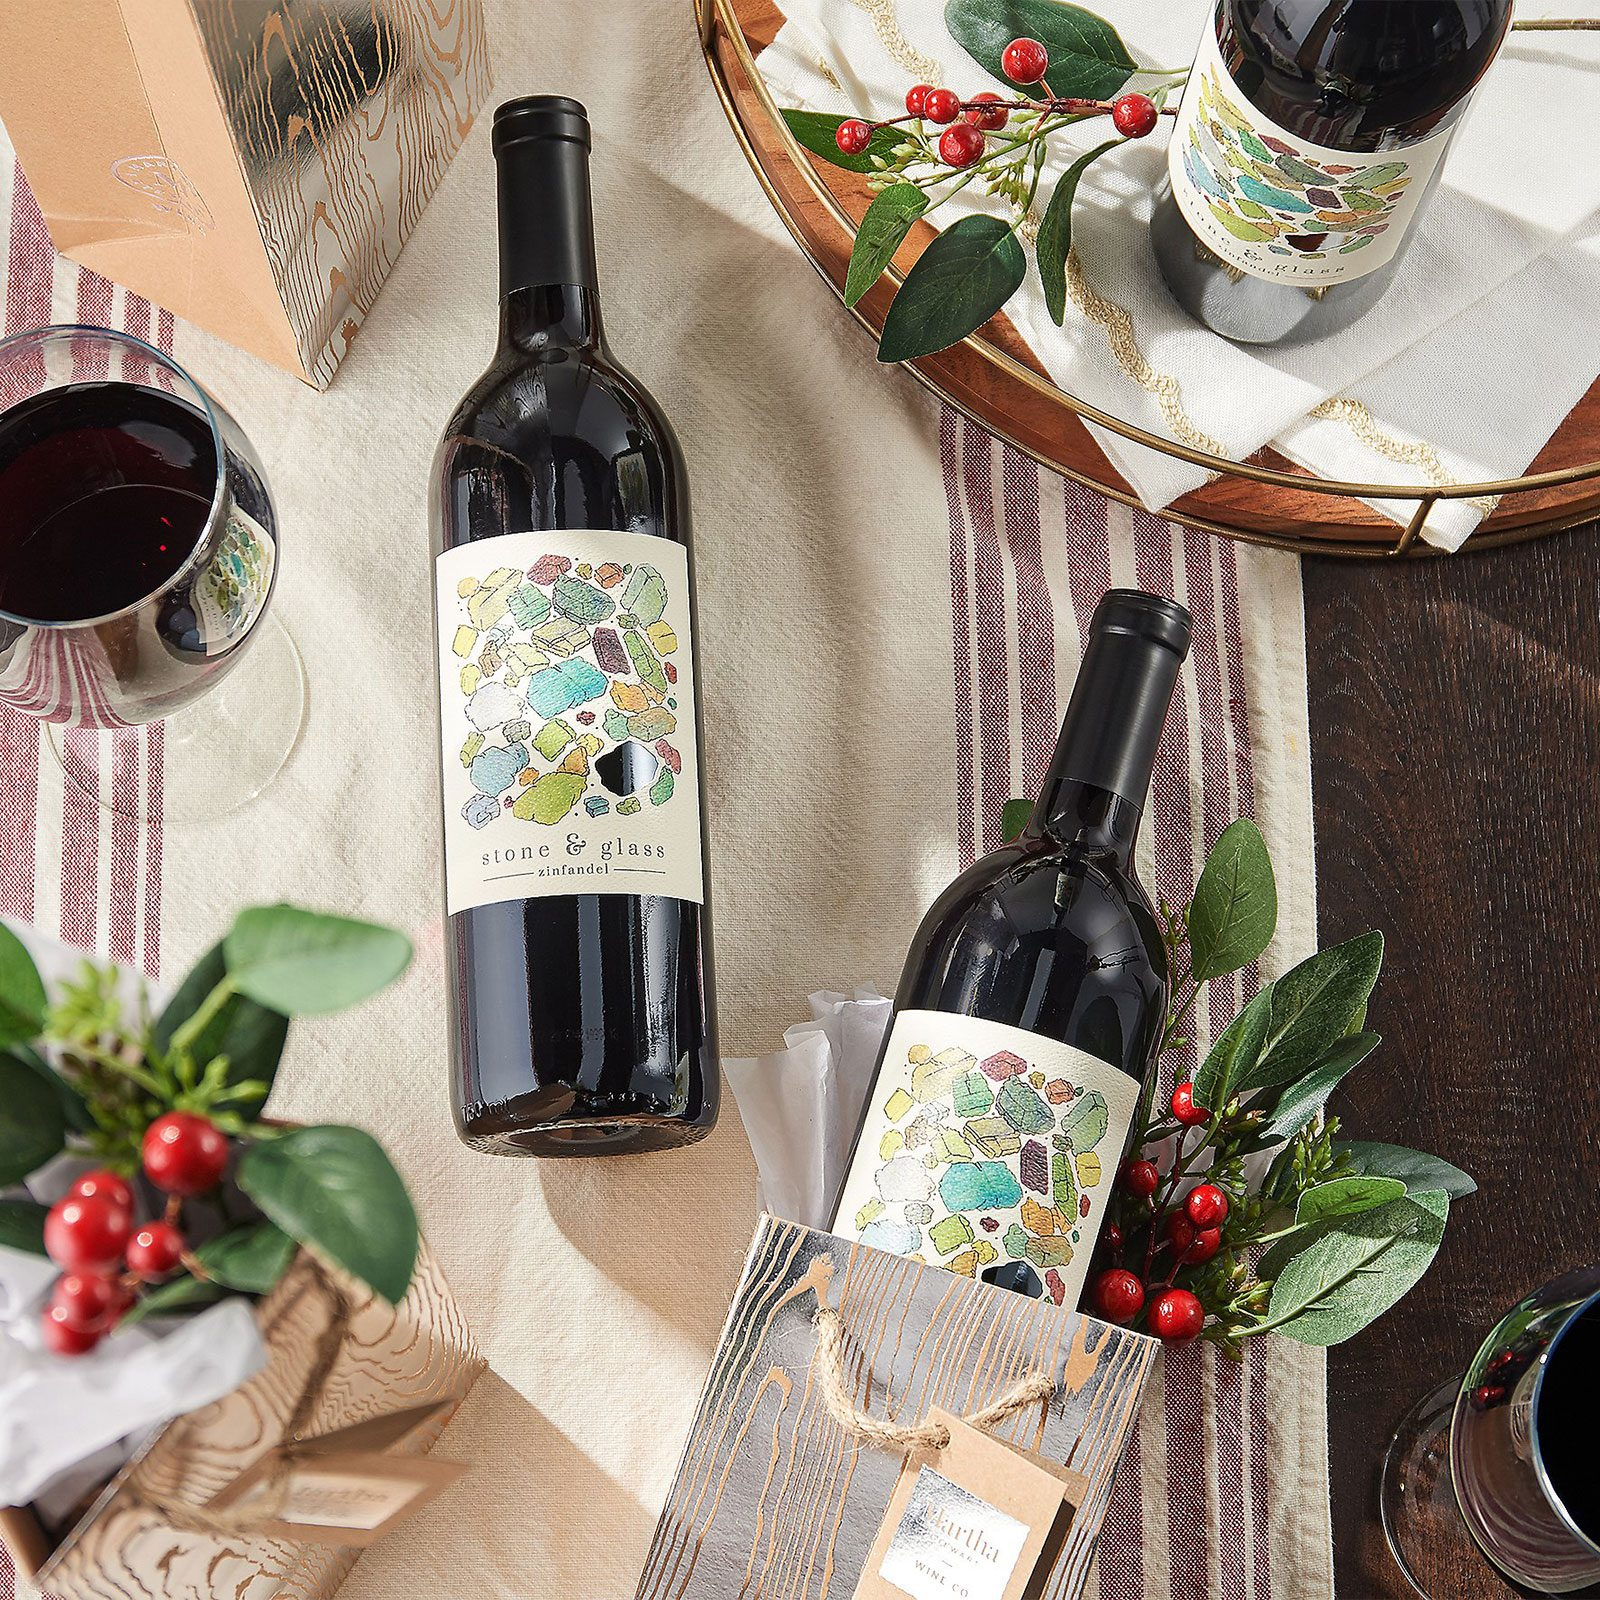 For the one who has everything: Three Bottle Gift Set from Martha Stewart Wine Co.